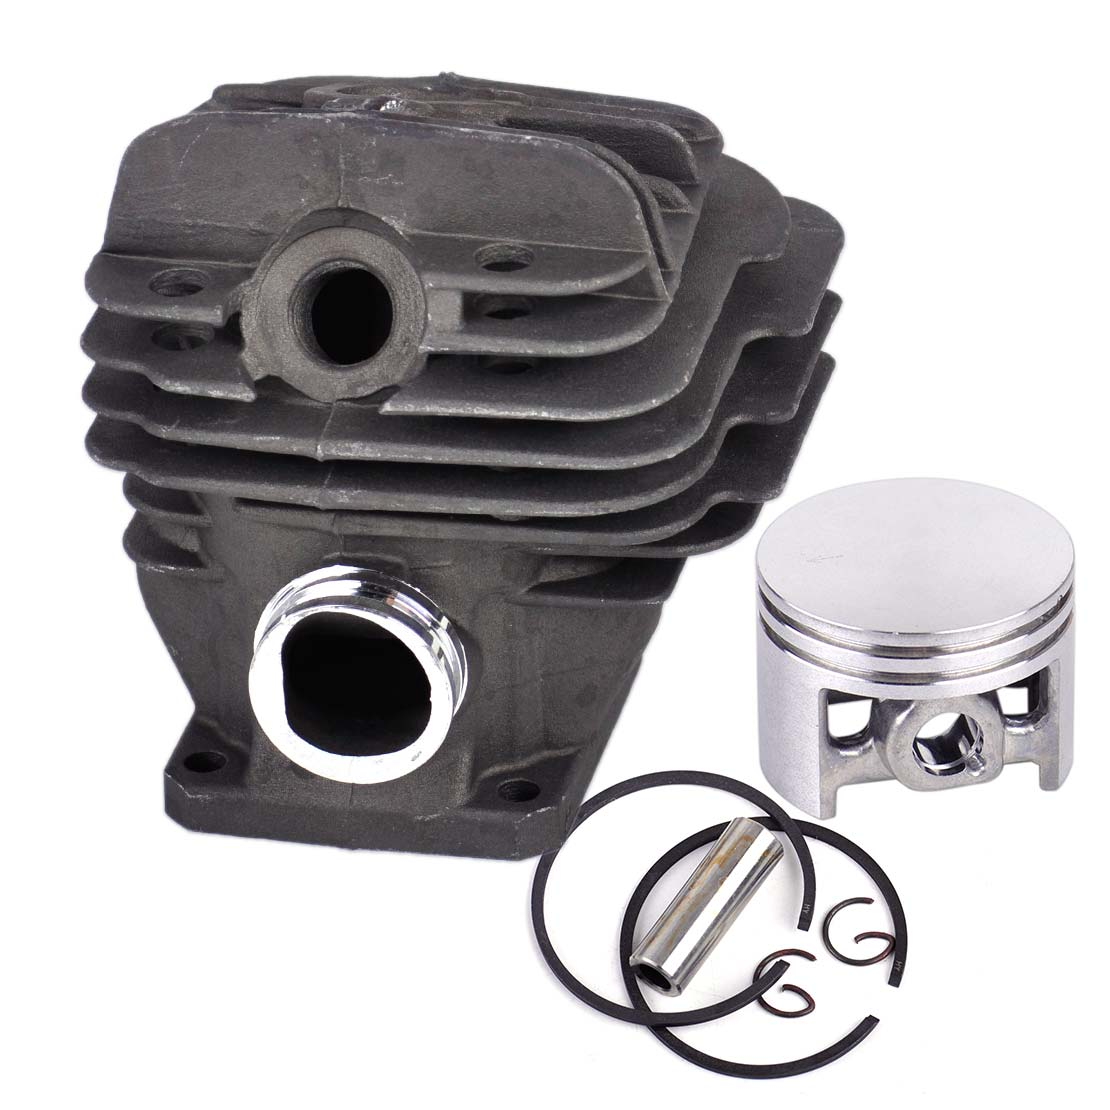 LETAOSK 44MM Cylinder Piston Ring Kit Fit for STIHL 026 MS260 Chainsaw 1121 020 1217Accessories ci юань суд обсидиана храбрый браслет